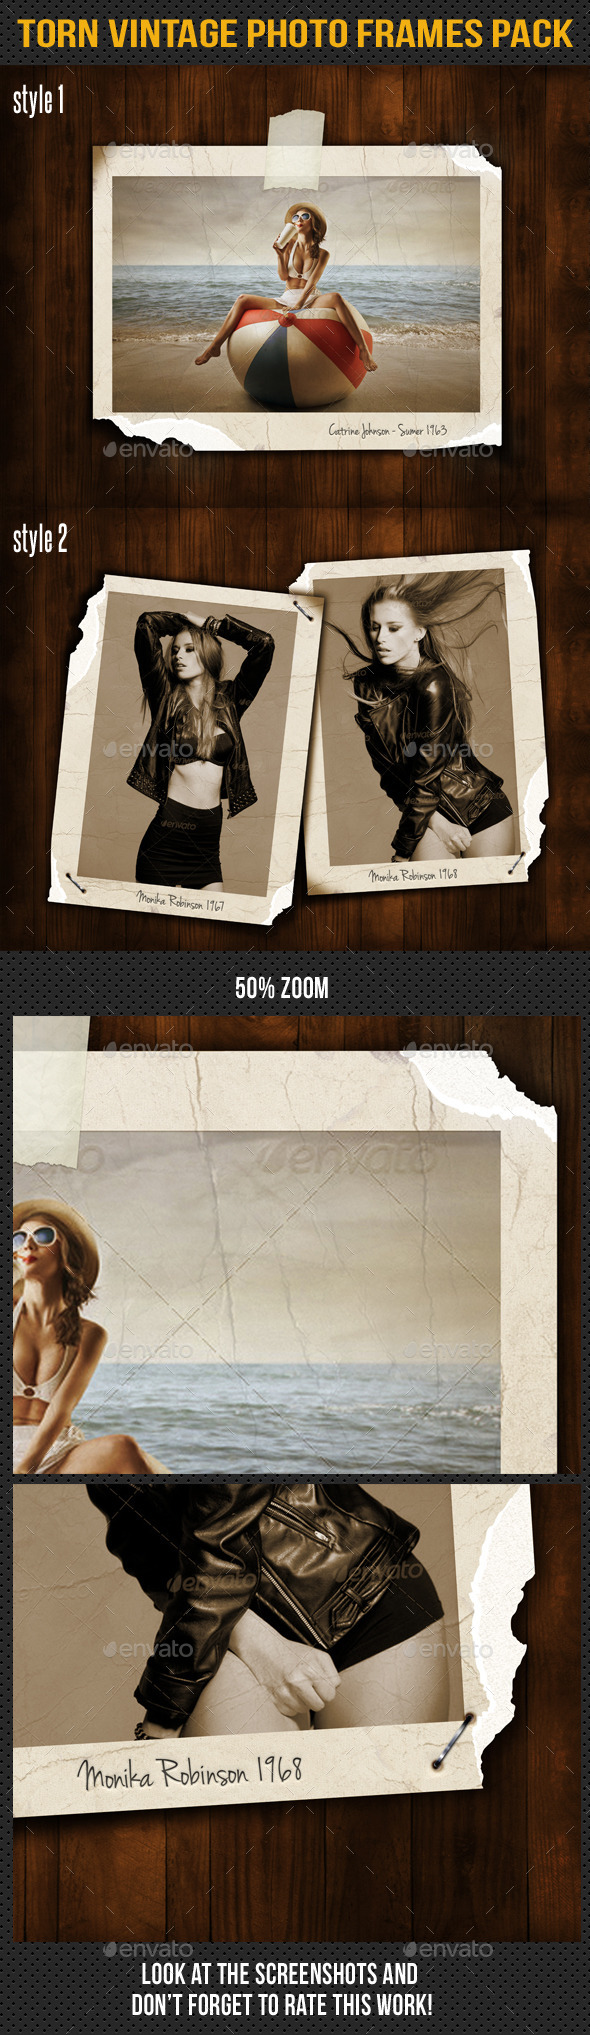 Torn Vintage Photo Frames Pack - Miscellaneous Photo Templates